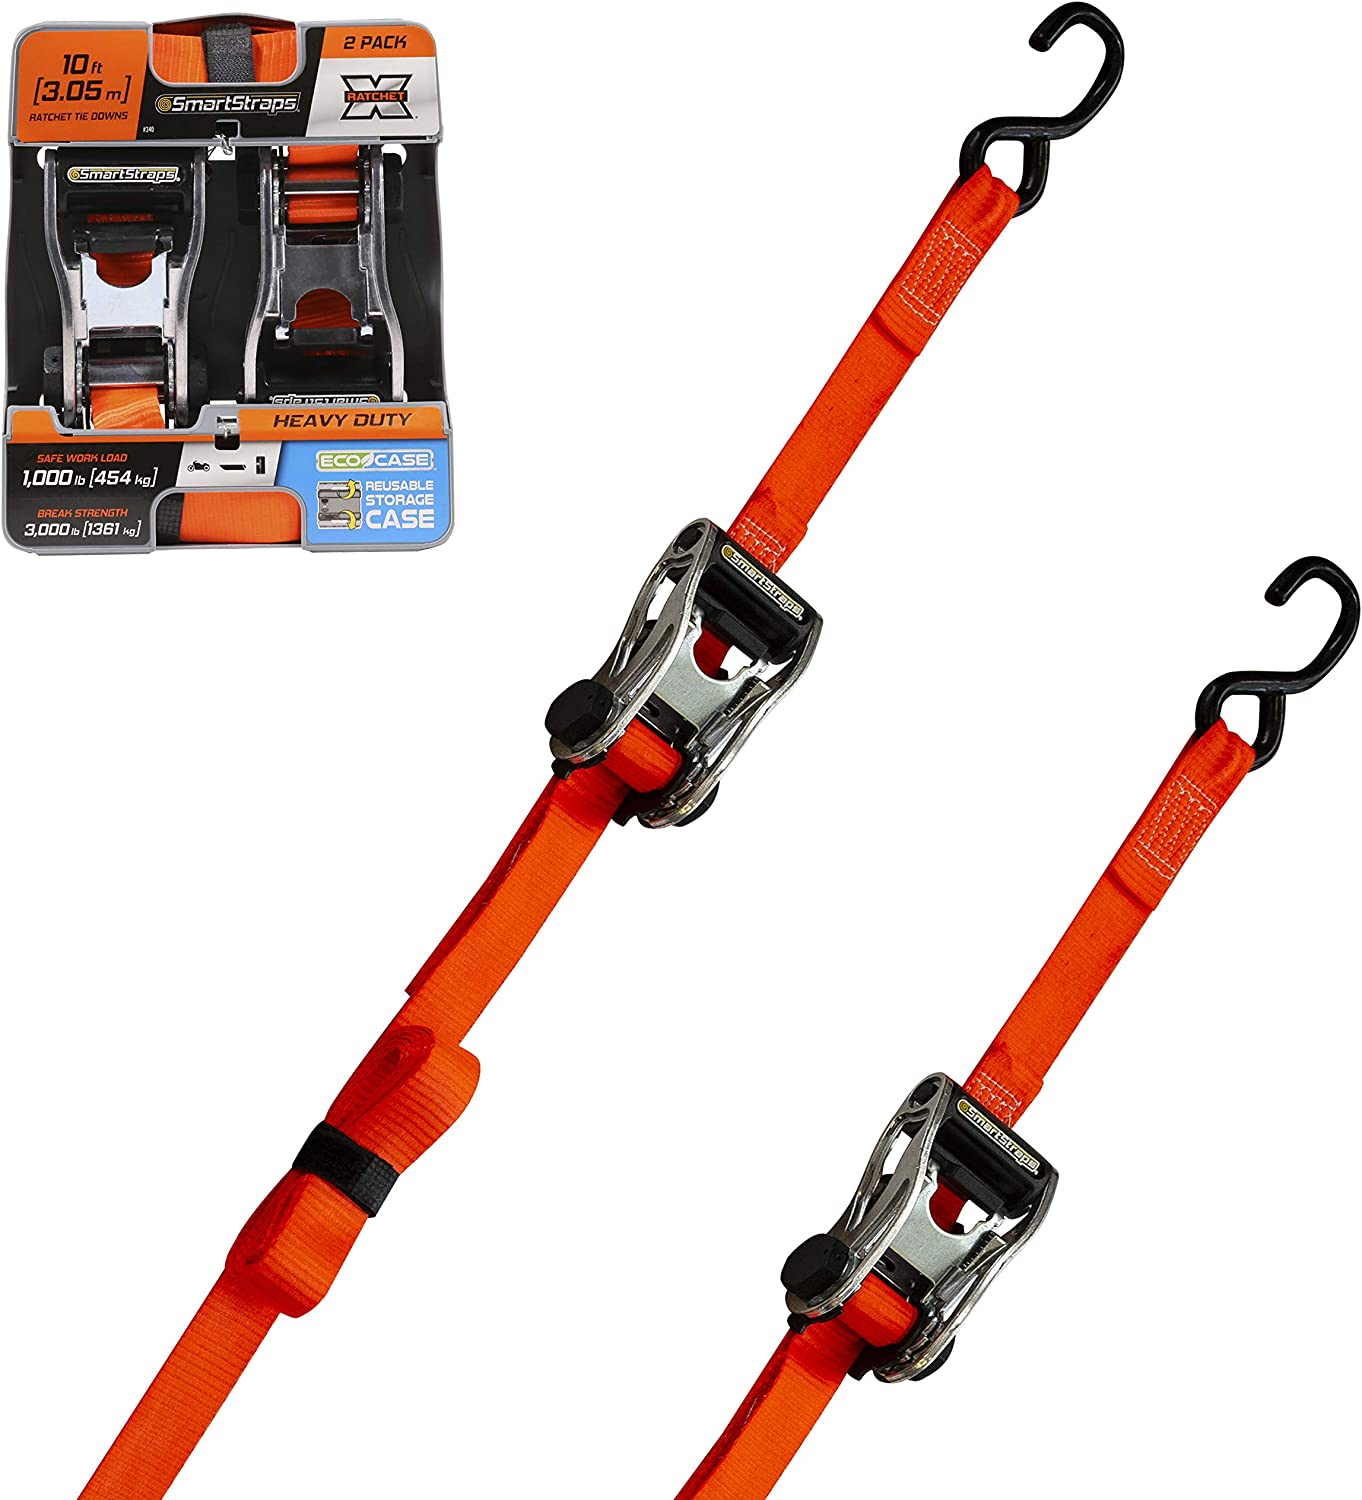 SMARTSTRAPS 14-Foot Premium Ratchet Straps 3,000 lbs Break Strength 1,000 lbs Safe Work Load 4pk User-Friendly Ratchet Straps Haul Heavy-Duty Loads Like Boats and Appliances Strong